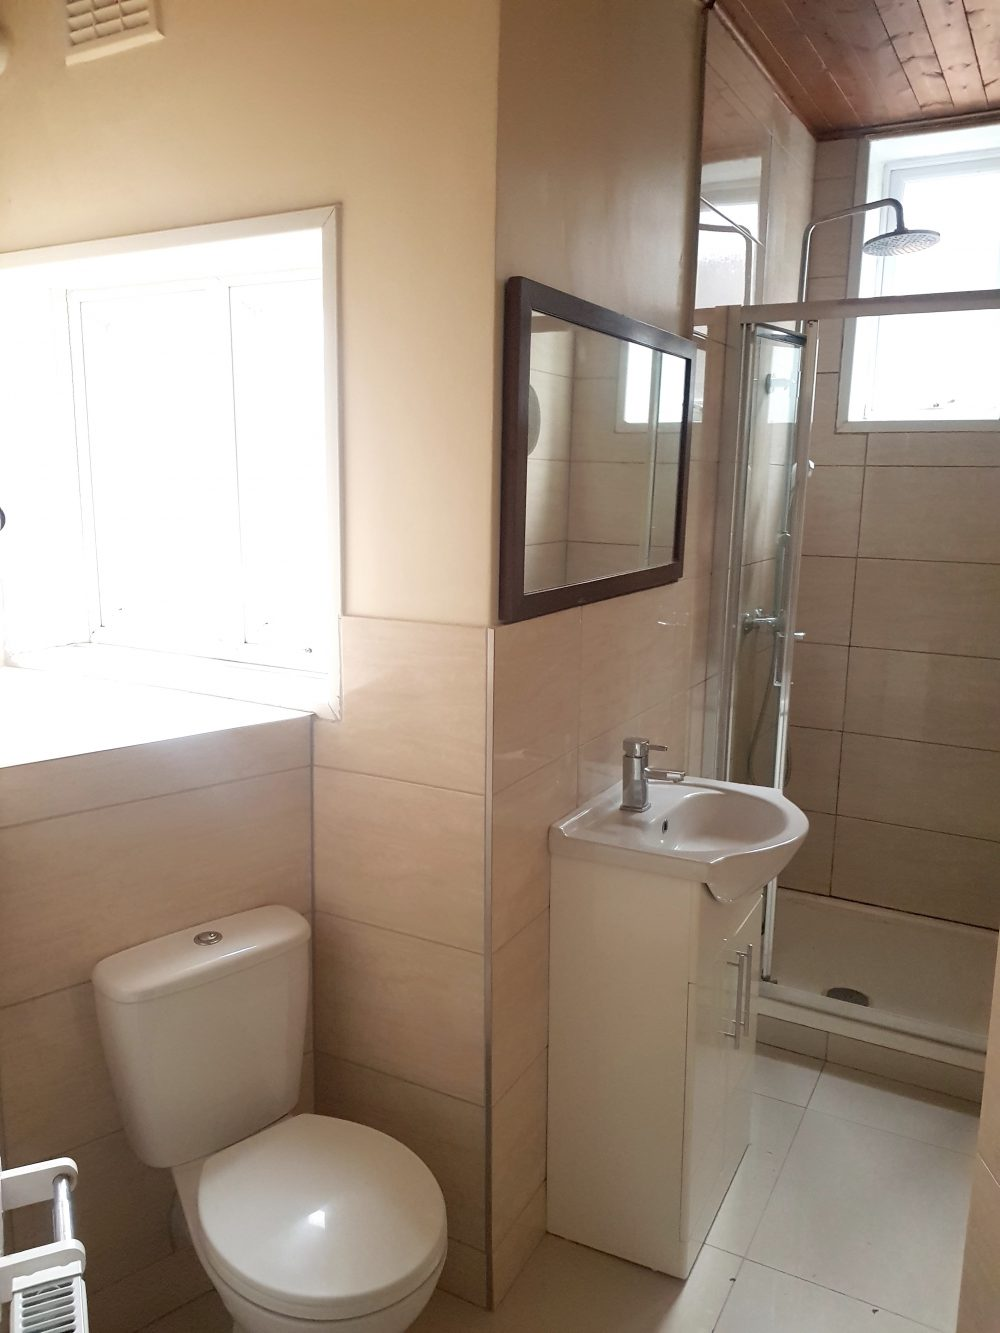 2 Bed Flat to rent in N15 Manor House Pic 15